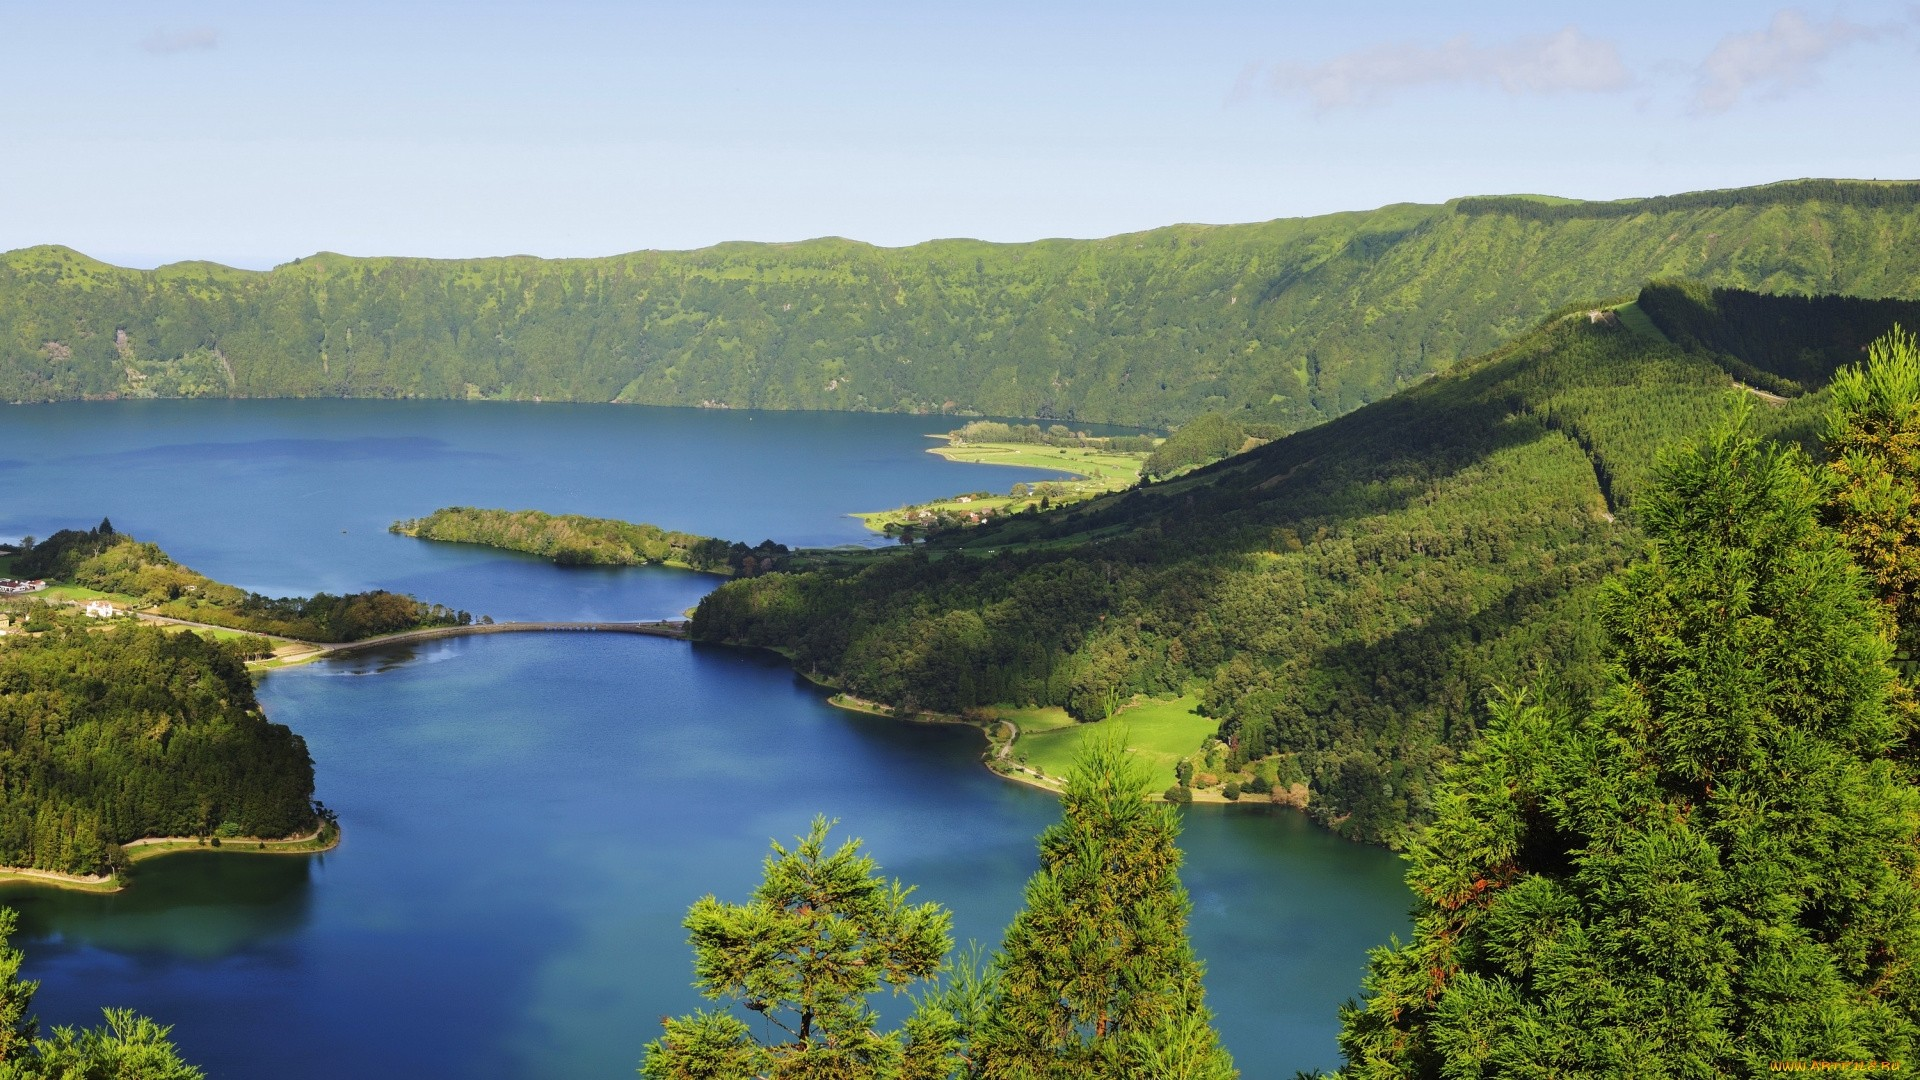 Azores Islands wallpaper for pc